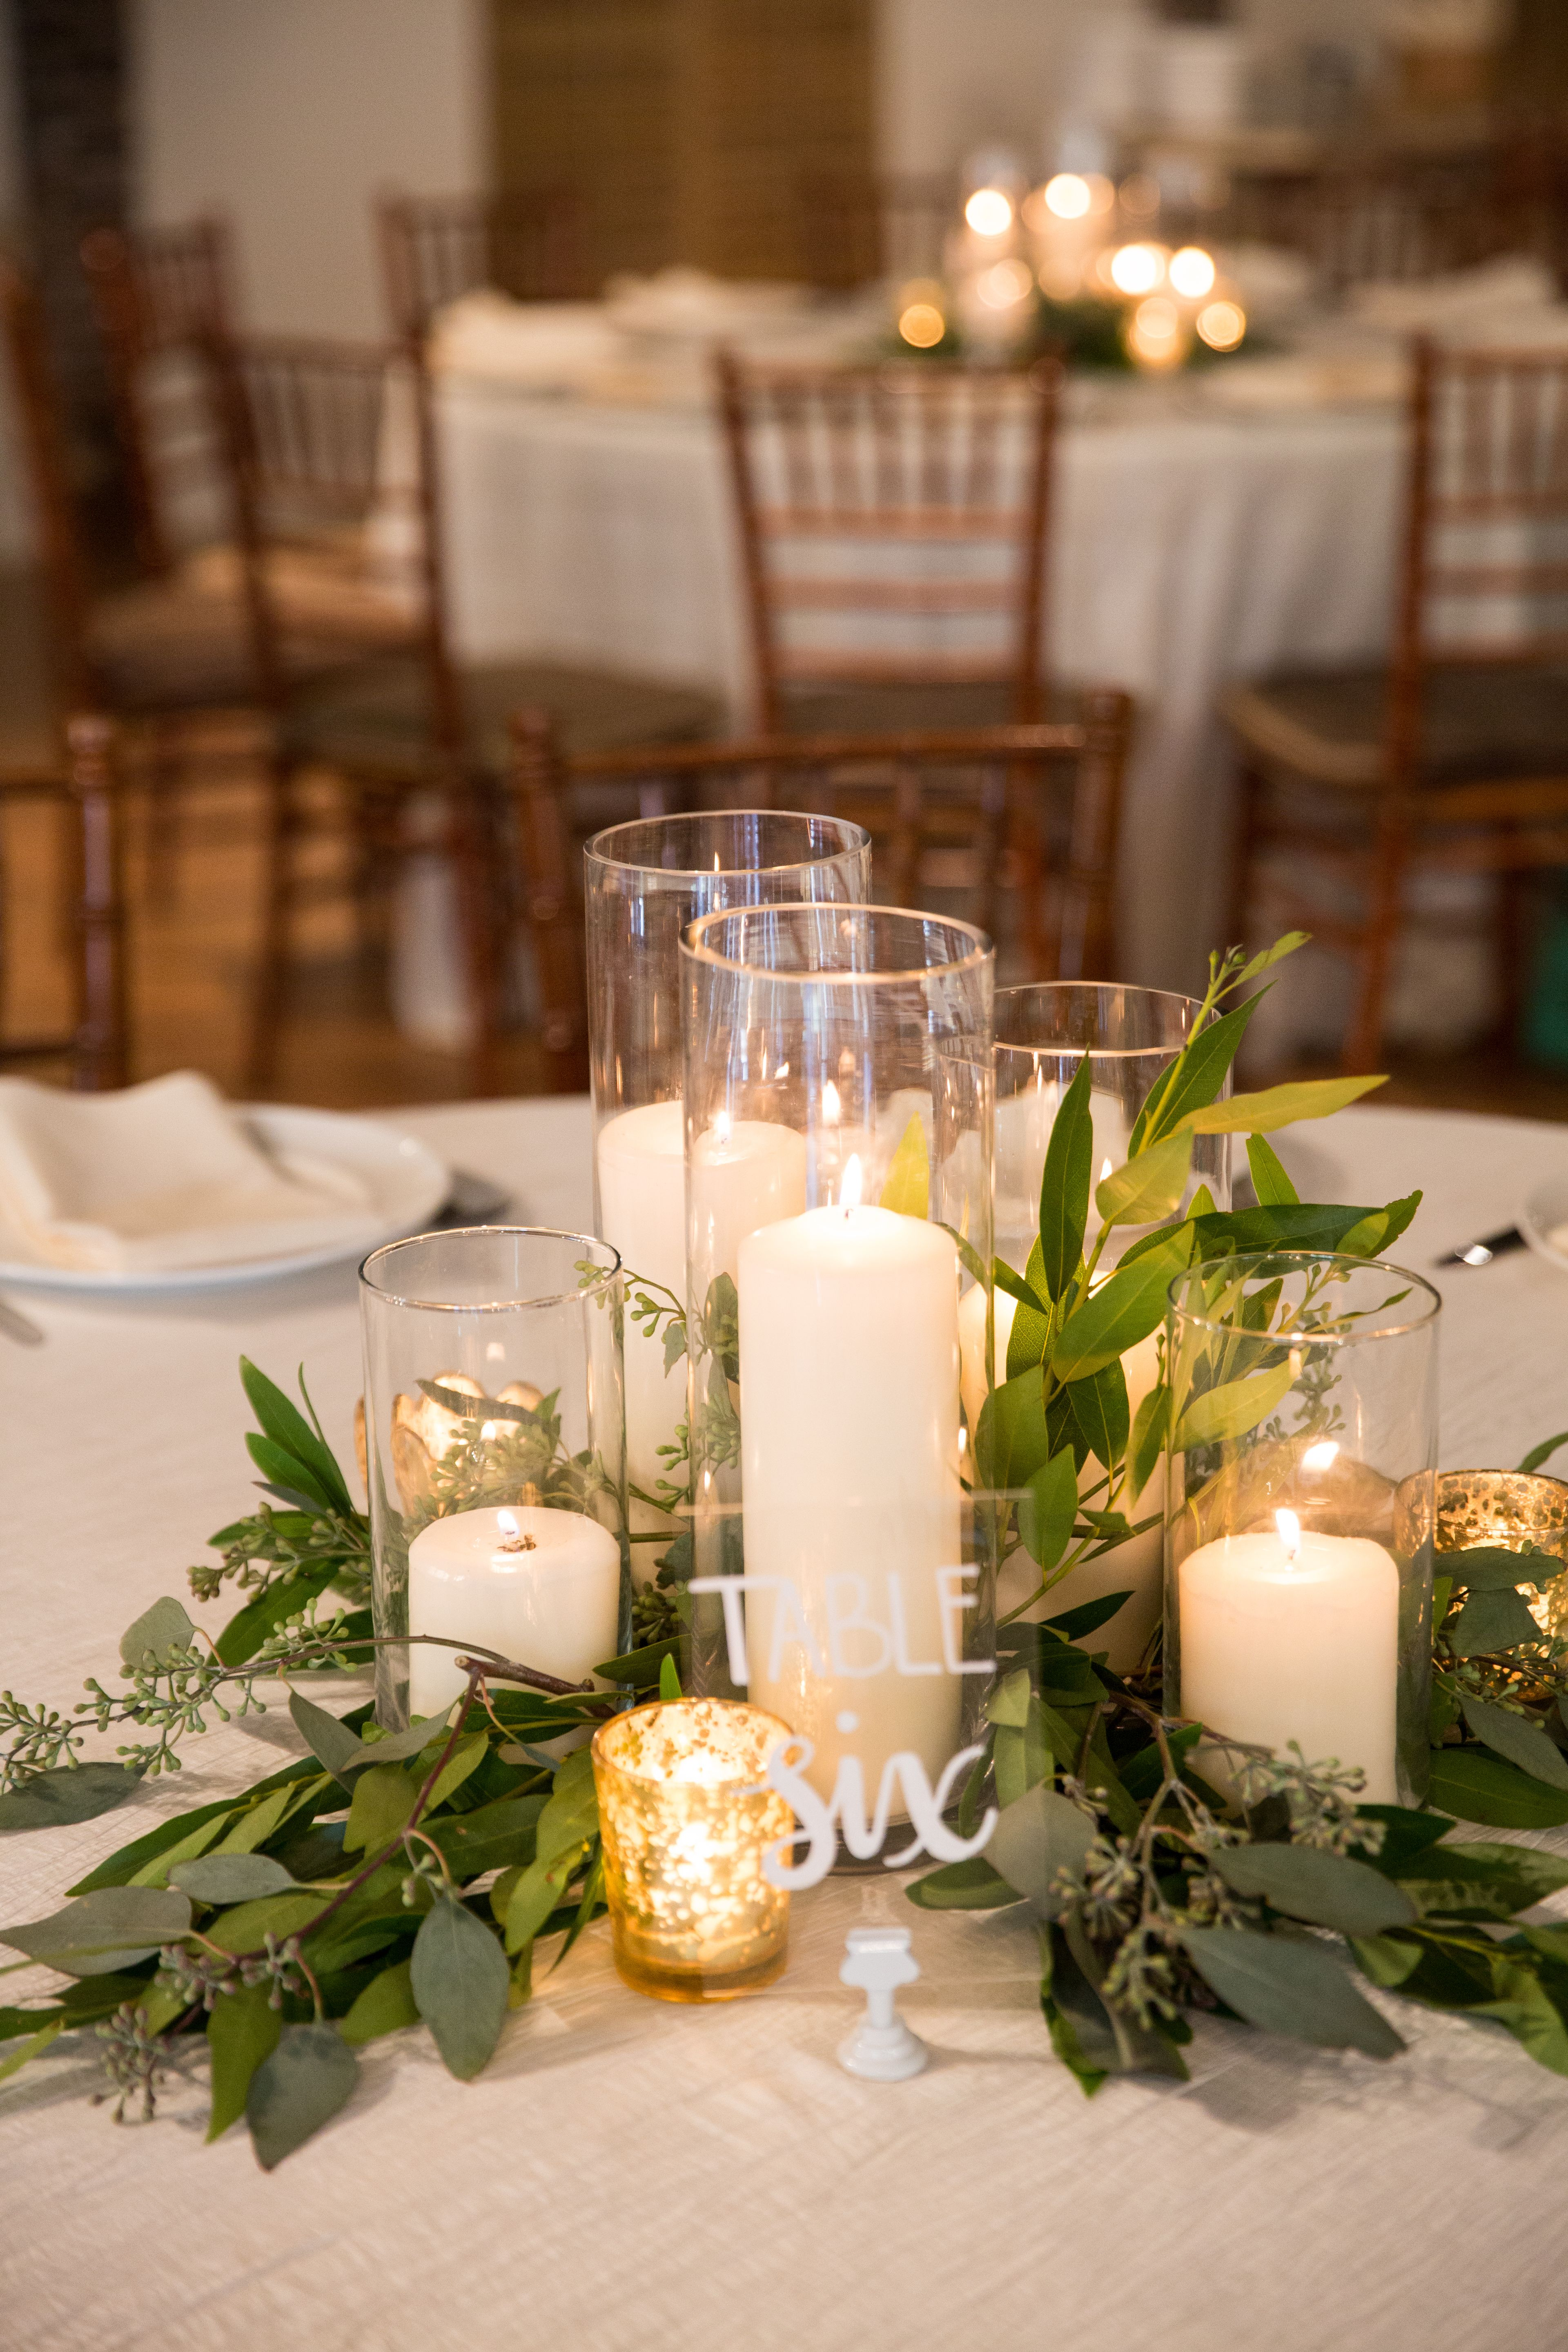 Charming Table Decor At Cannon Green In Charleston S C Photo Chelsea Paige Photography Candle Wedding Centerpieces Wedding Centerpieces Wedding Table